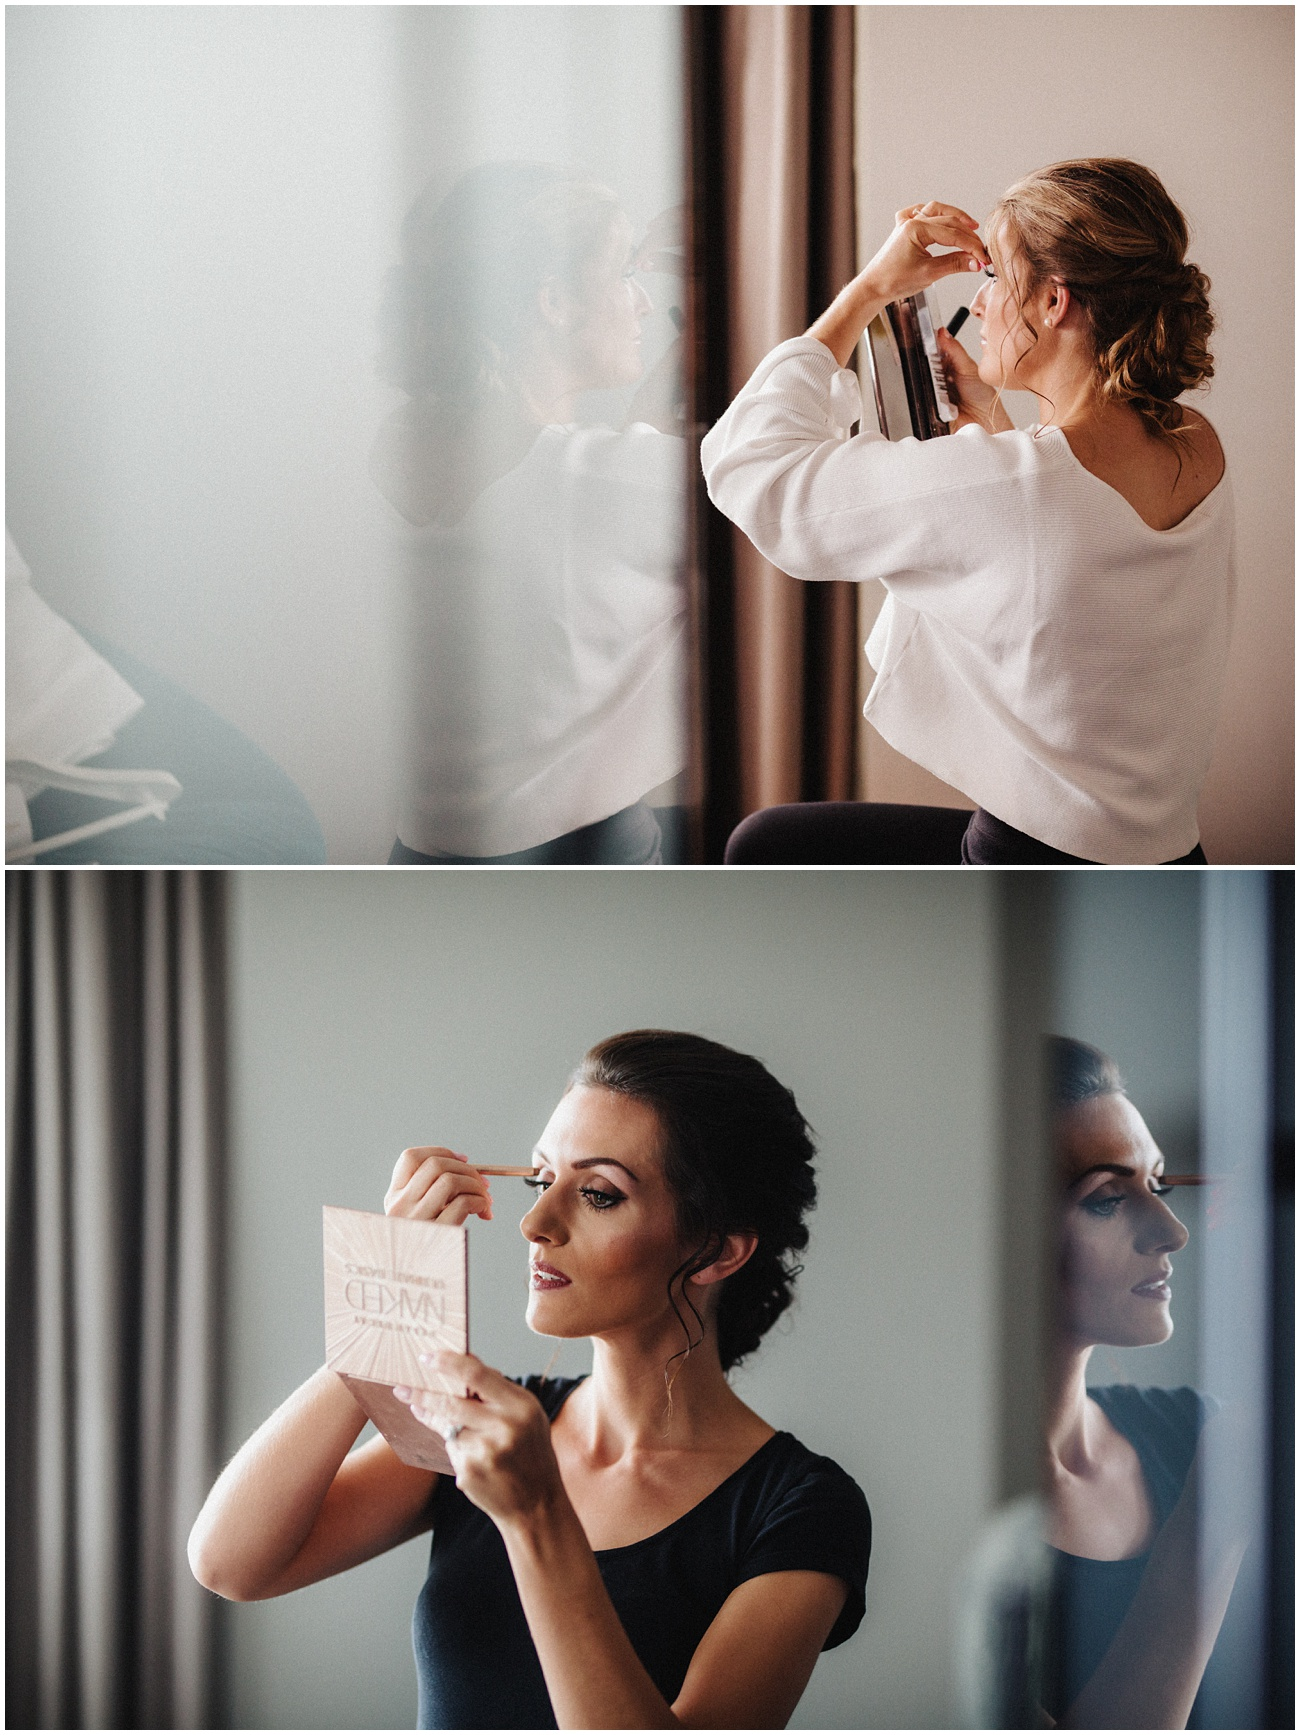 The bridesmaids putting makeup on using a small handheld mirror